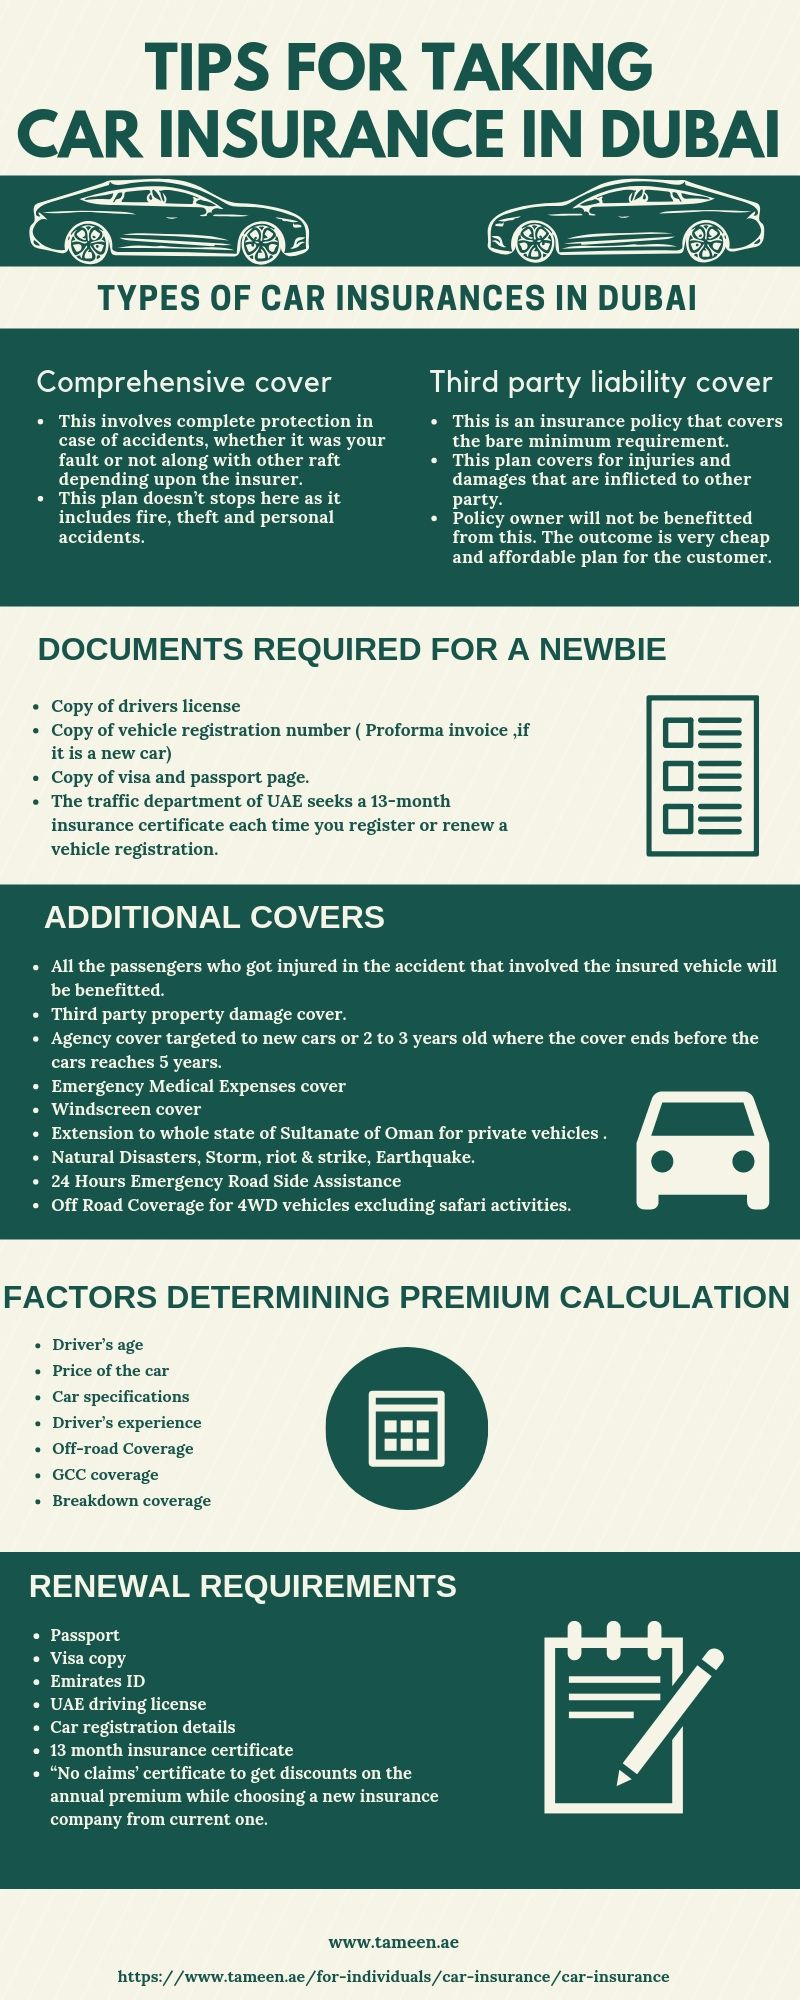 Here Are The Different Car Insurance Policies And Additional